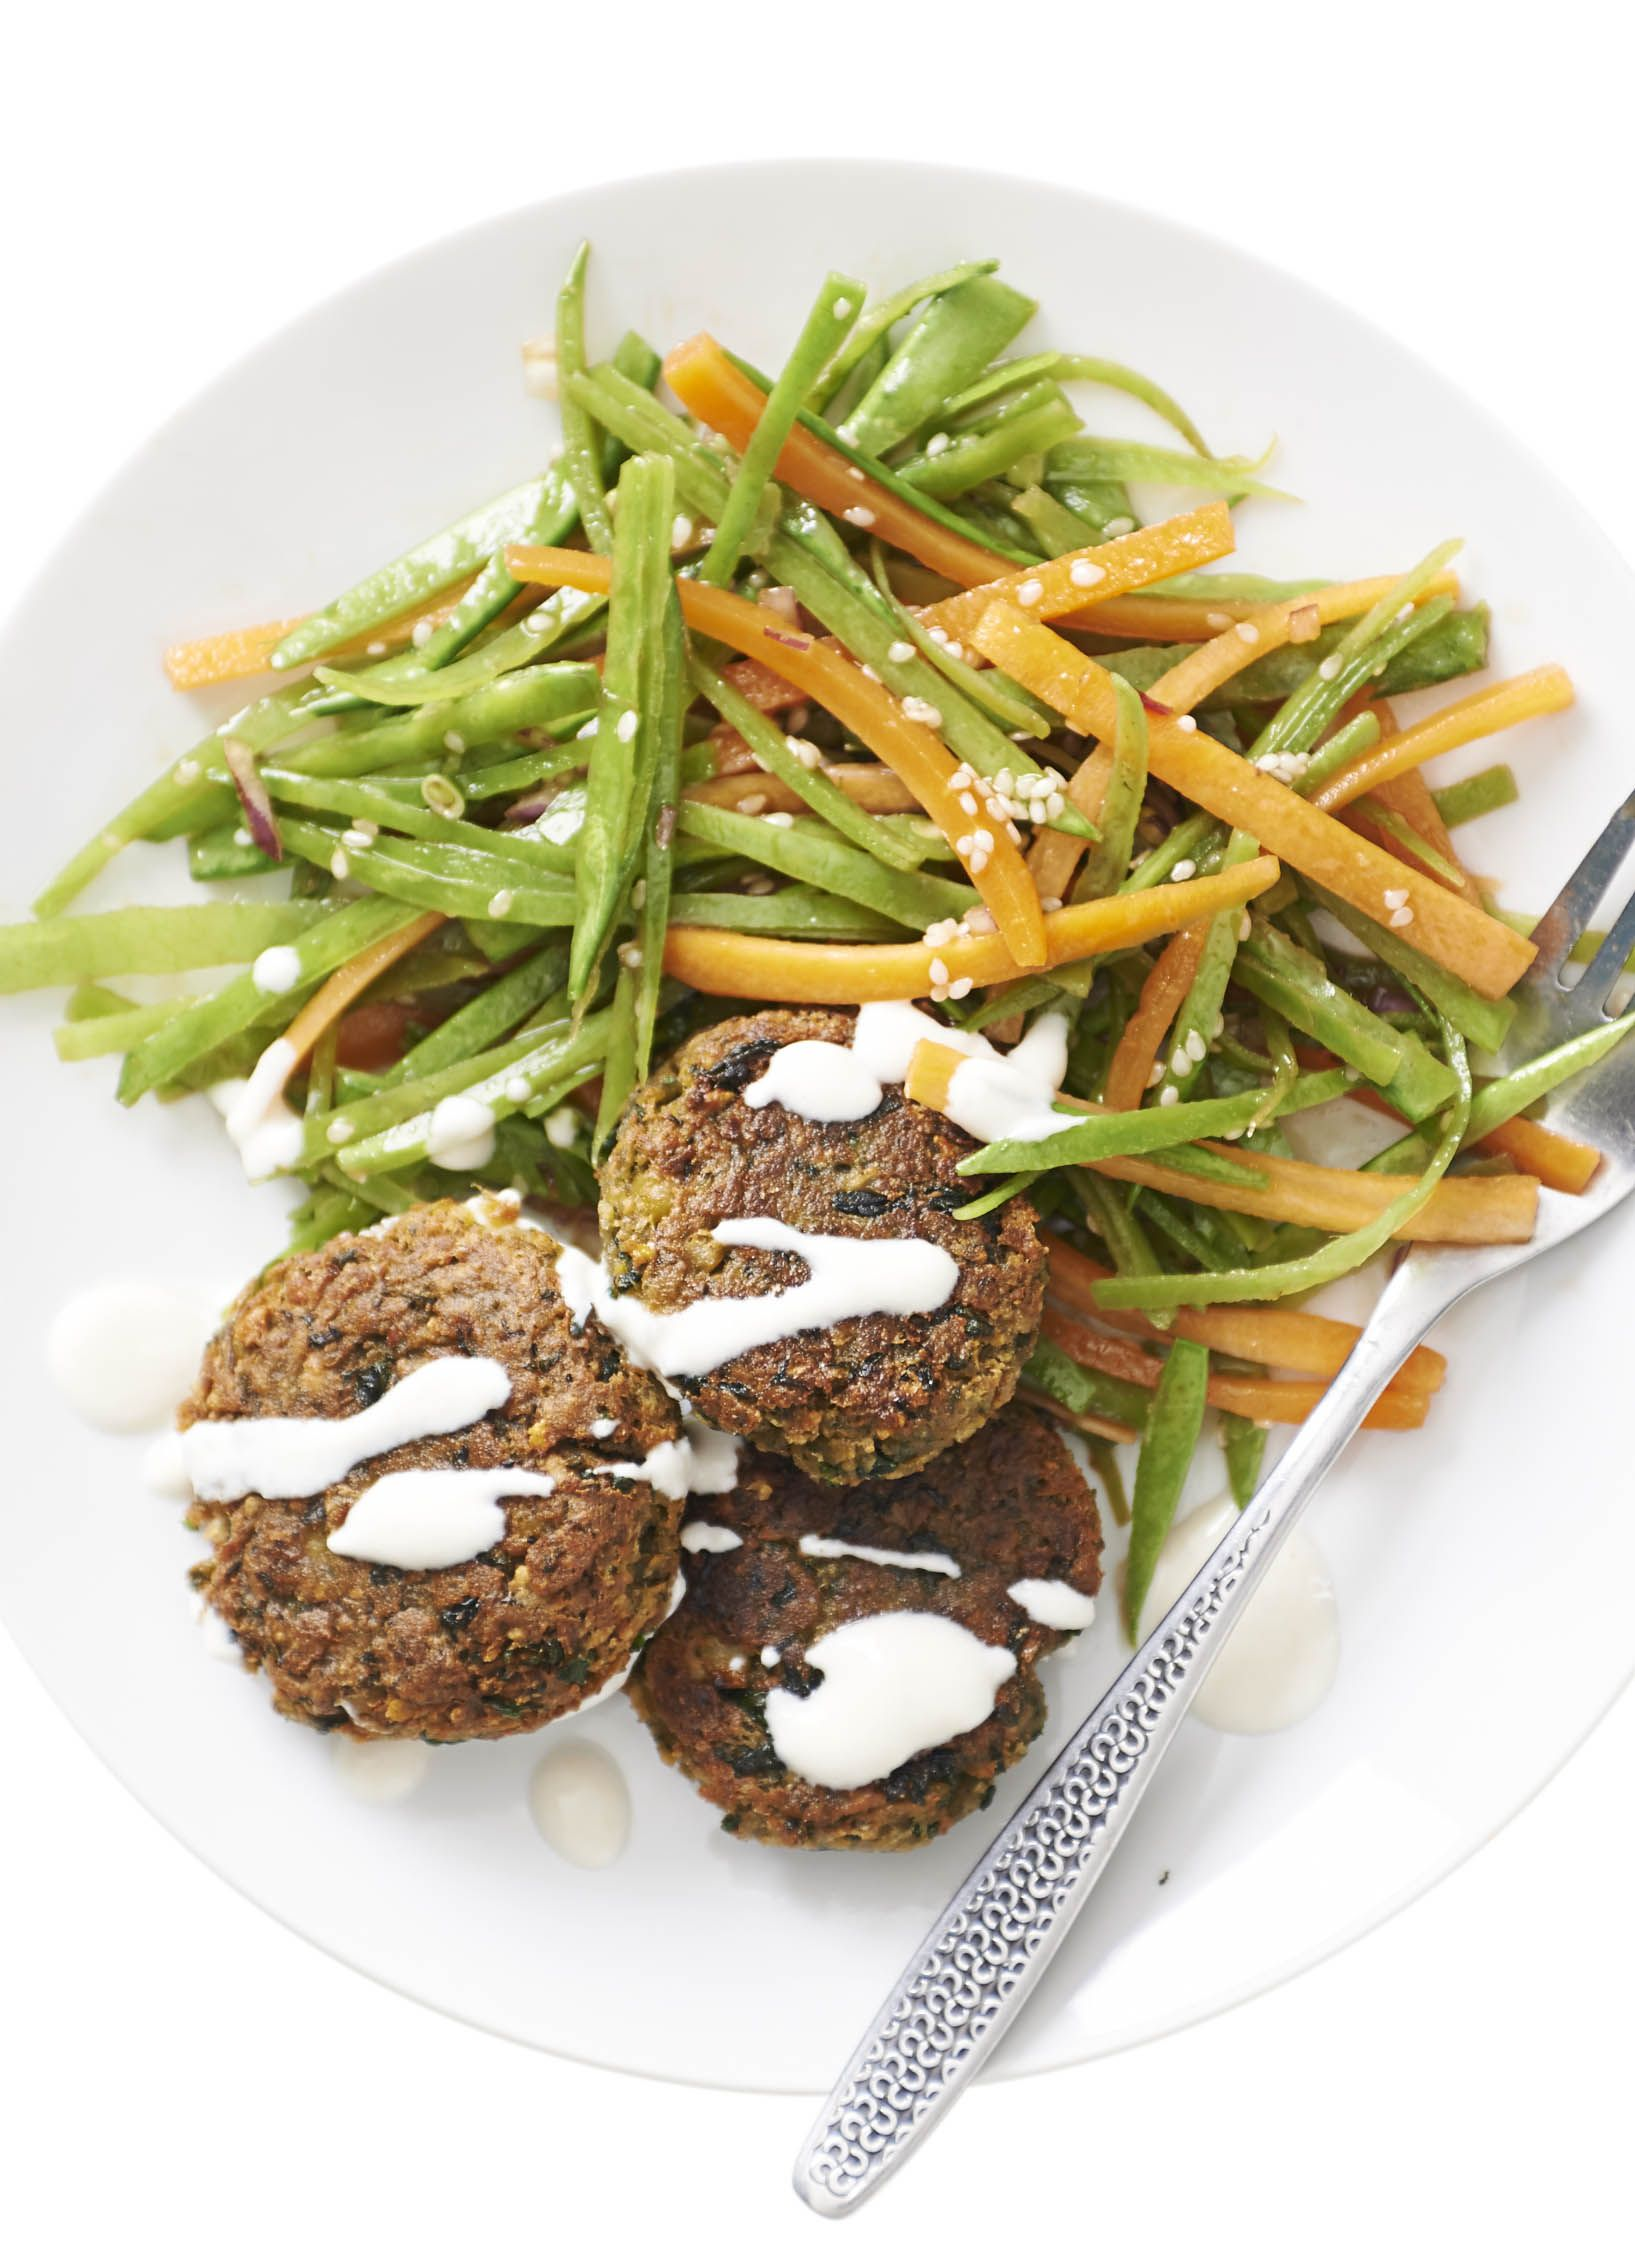 Spinach falafel with sesame mange tout salad: Our low-fat and low-calorie falafel takes a spinach twist in this easy recipe. Accompany your homemade falafel with a fresh mange tout salad for a healthy, feel-good meal.